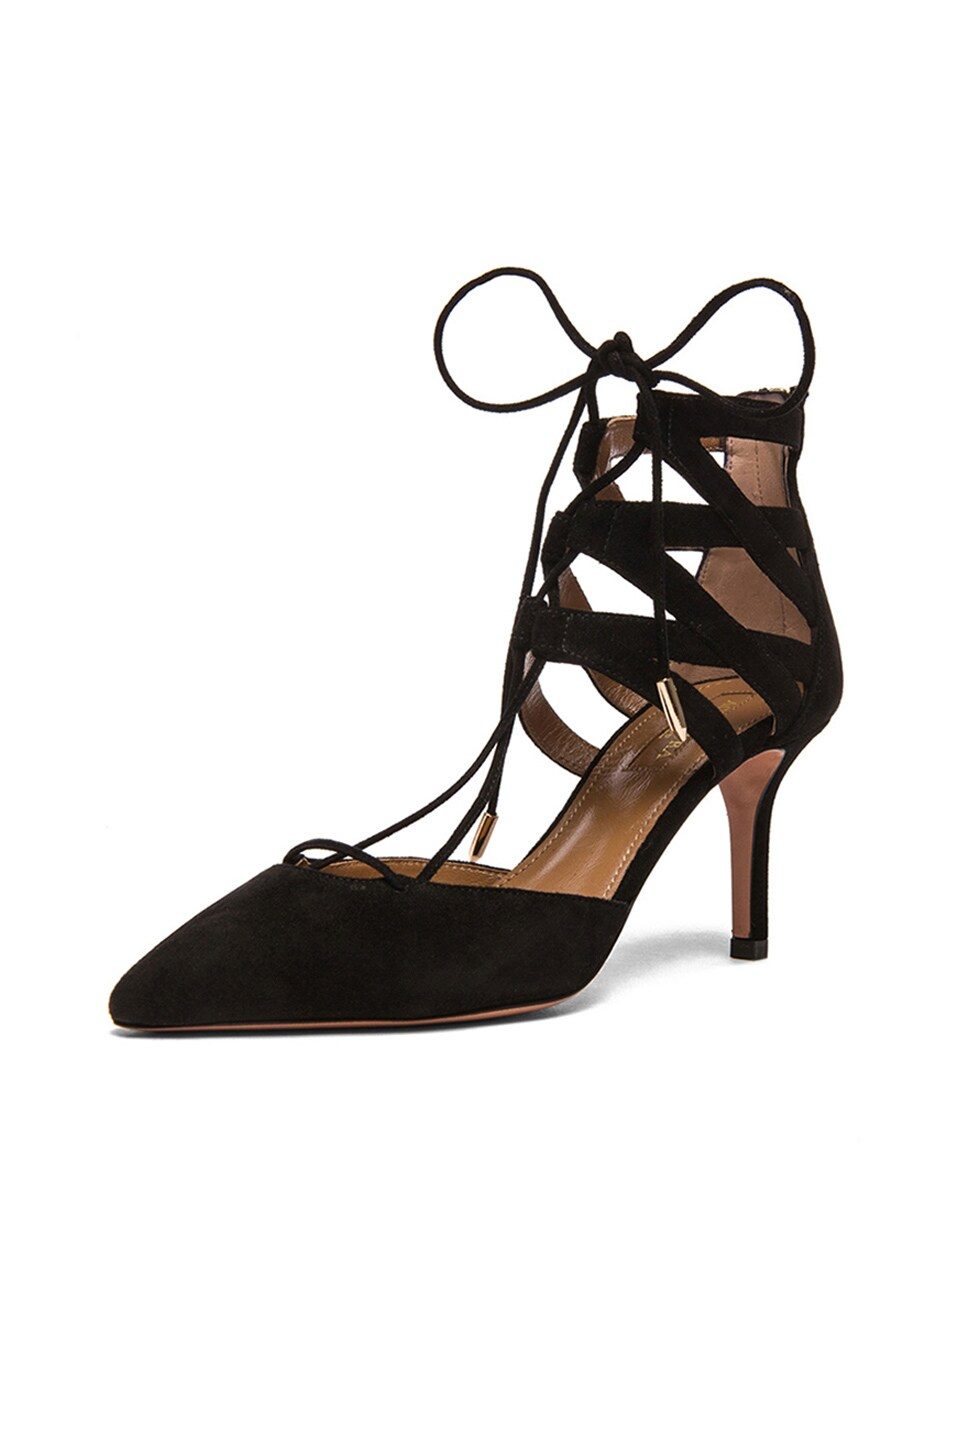 Image 2 of Aquazzura Belgravia Suede Lace Up Pumps in Black